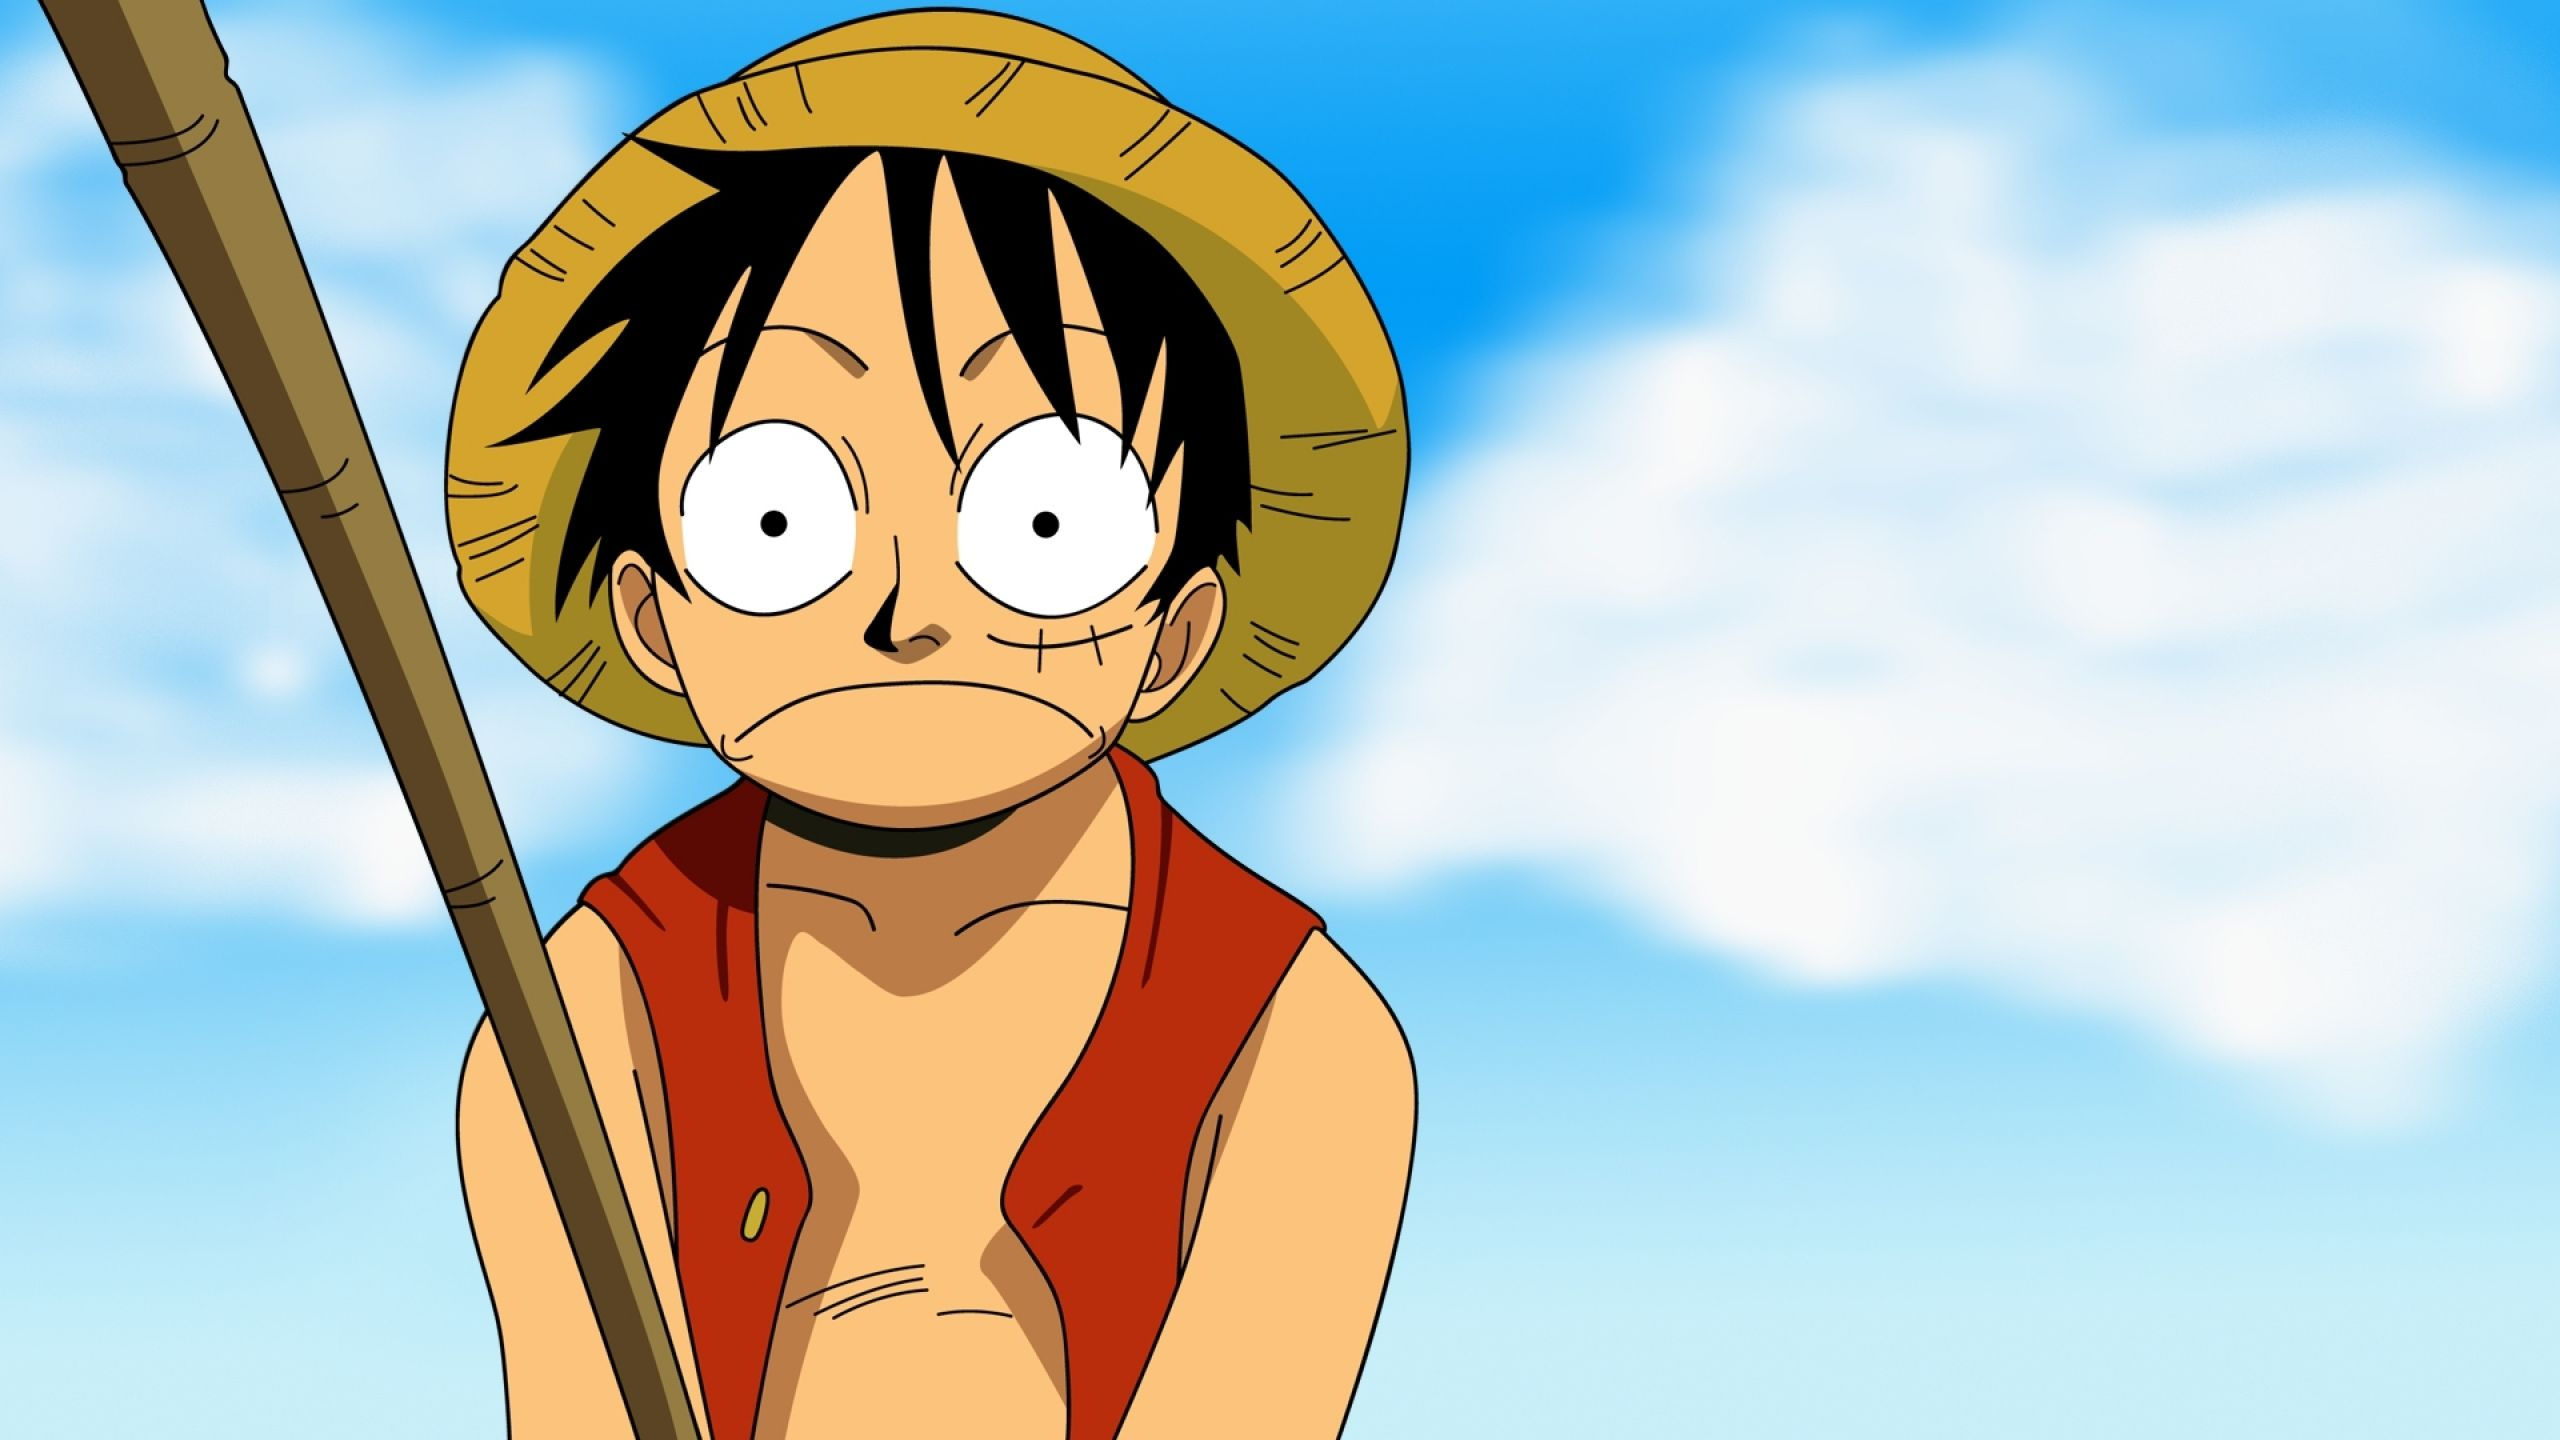 Funny one piece luffy wallpaper anime top anime series - Best anime images website ...